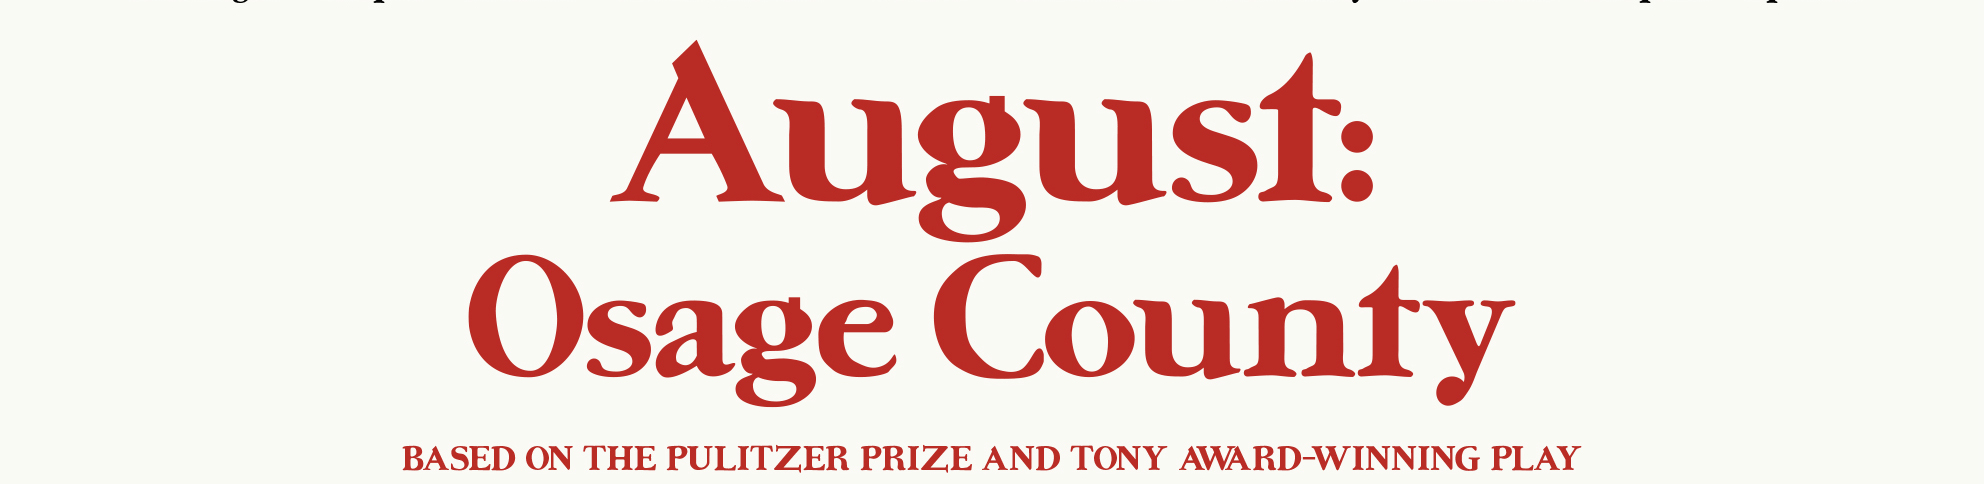 Recension August Osage County GGGG (inkl video)